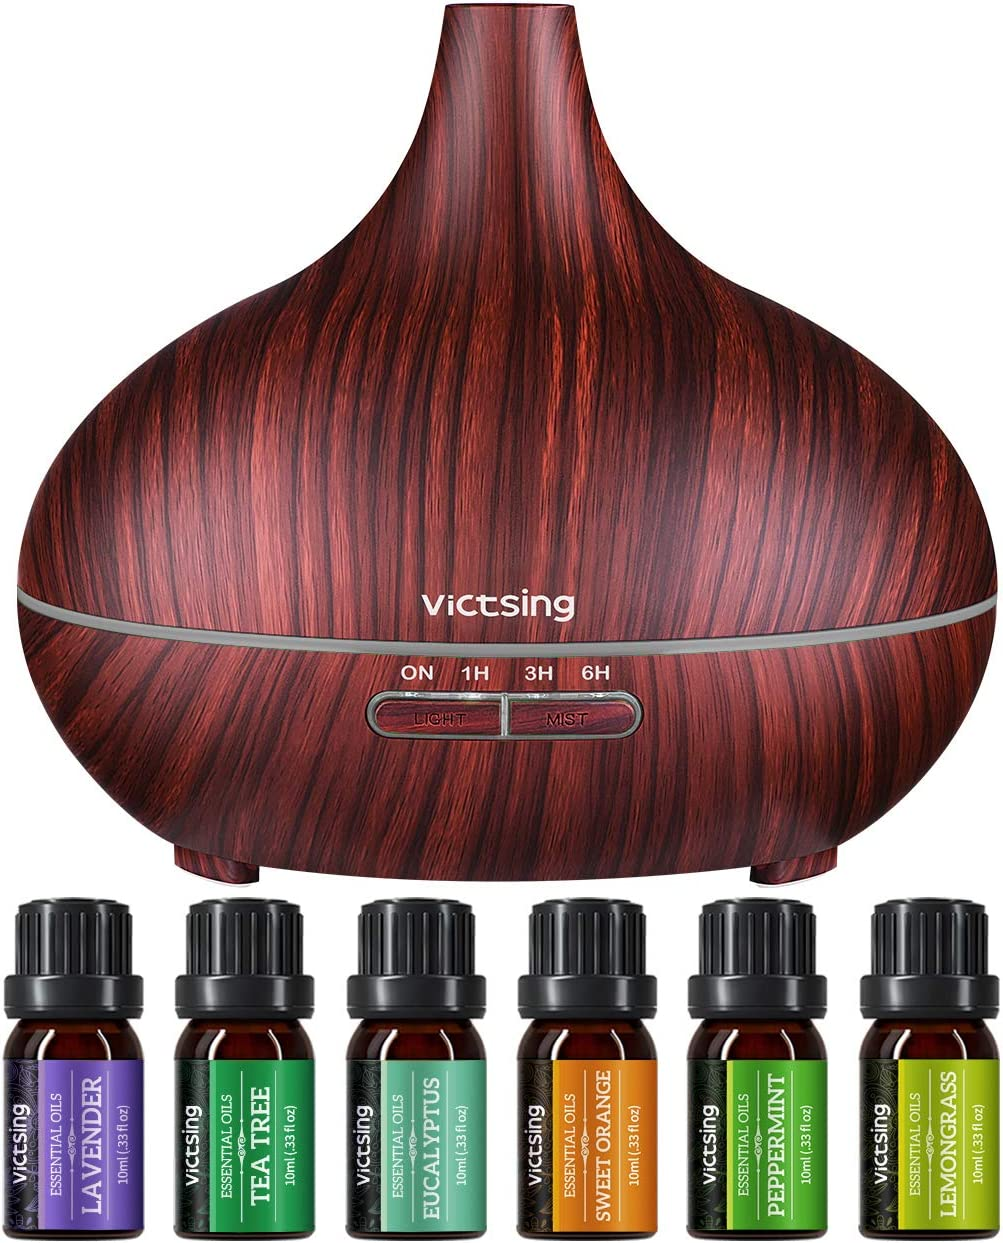 VicTsing 500ml Essential Oil Diffuser with Oils, Aromatherapy Diffuser with Essential Oil Set, Diffusers for Essential Oils with Auto Shut-Off, 4 Timer, Gift Set for Home, Red Brown